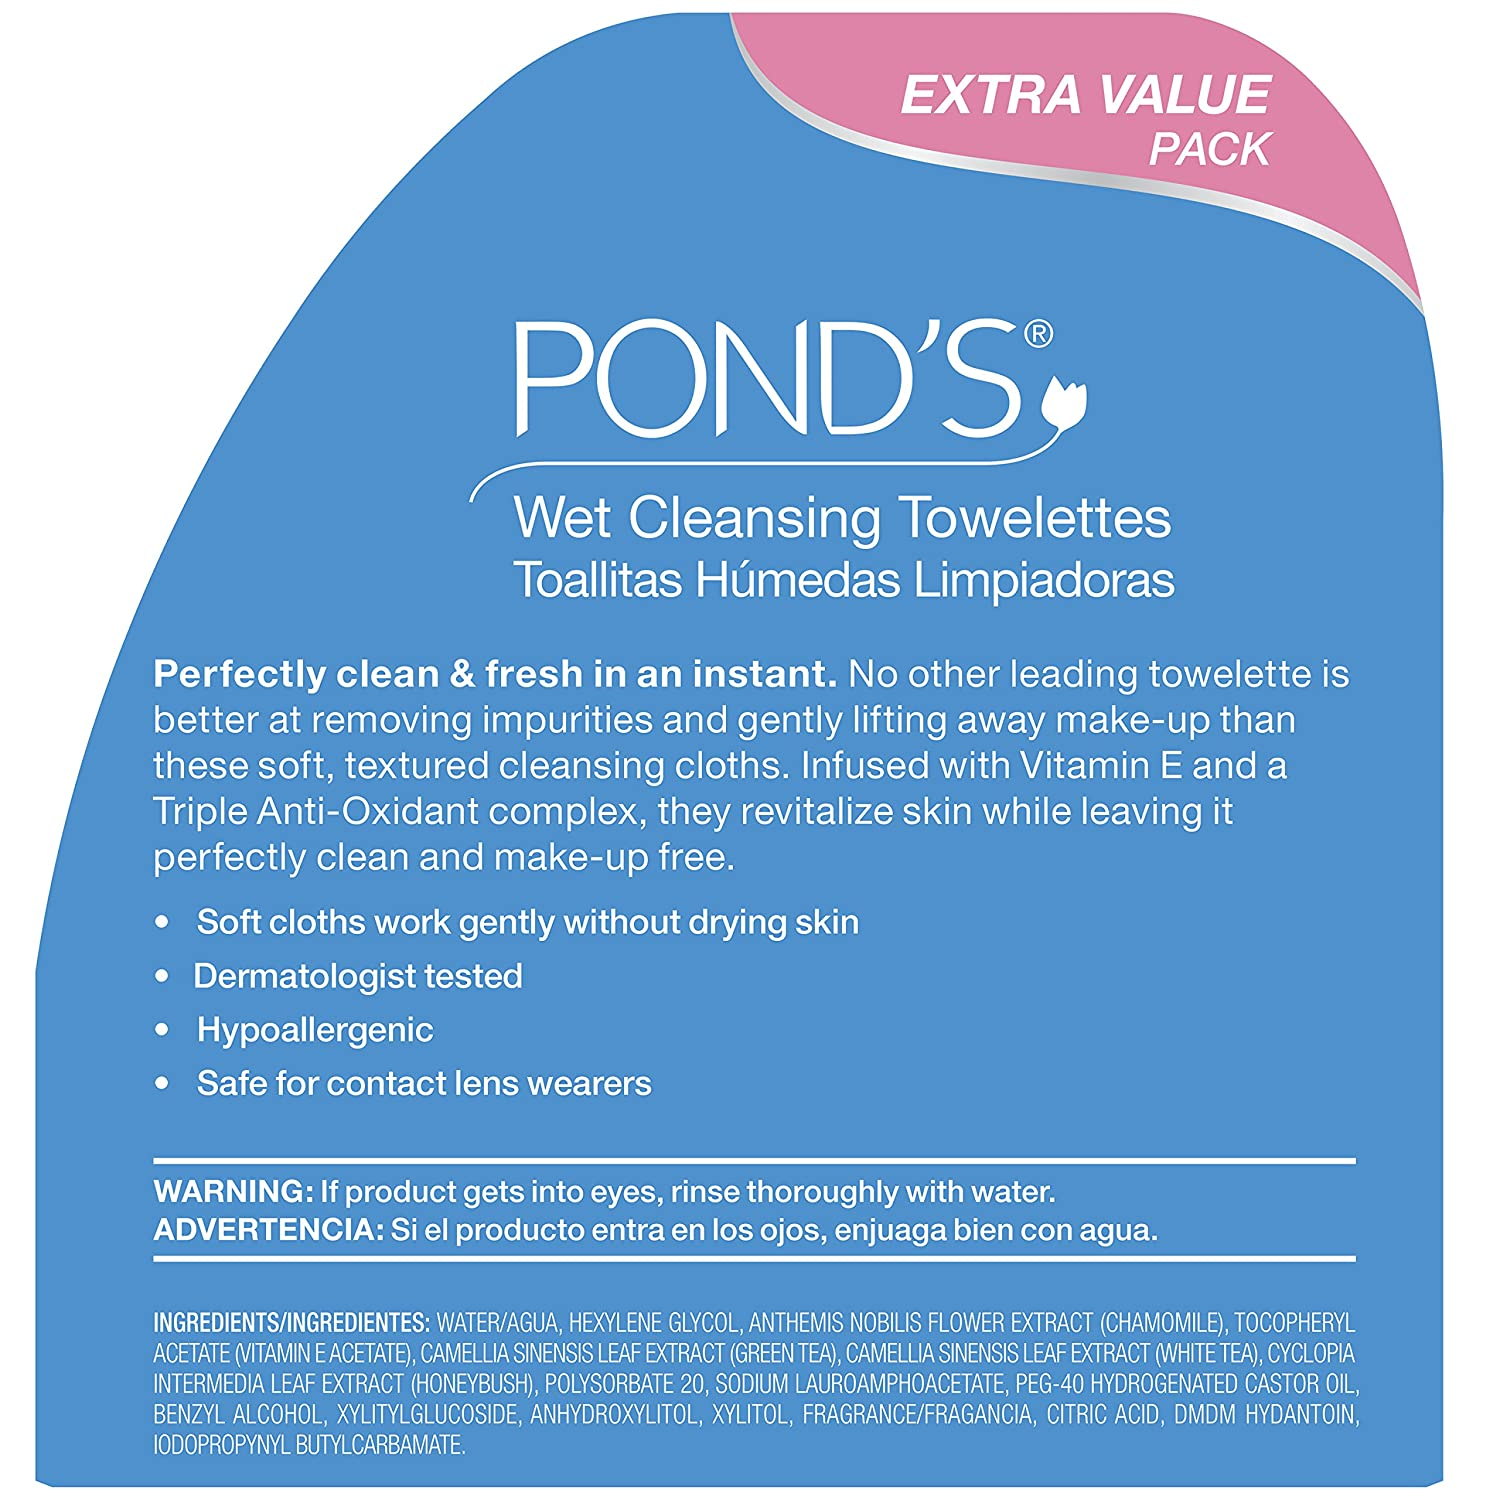 Amazon.com : Ponds Original Fresh Wet Cleansing Towelettes, With Vitamin E, 30 Towelettes (Pack of 3) : Beauty